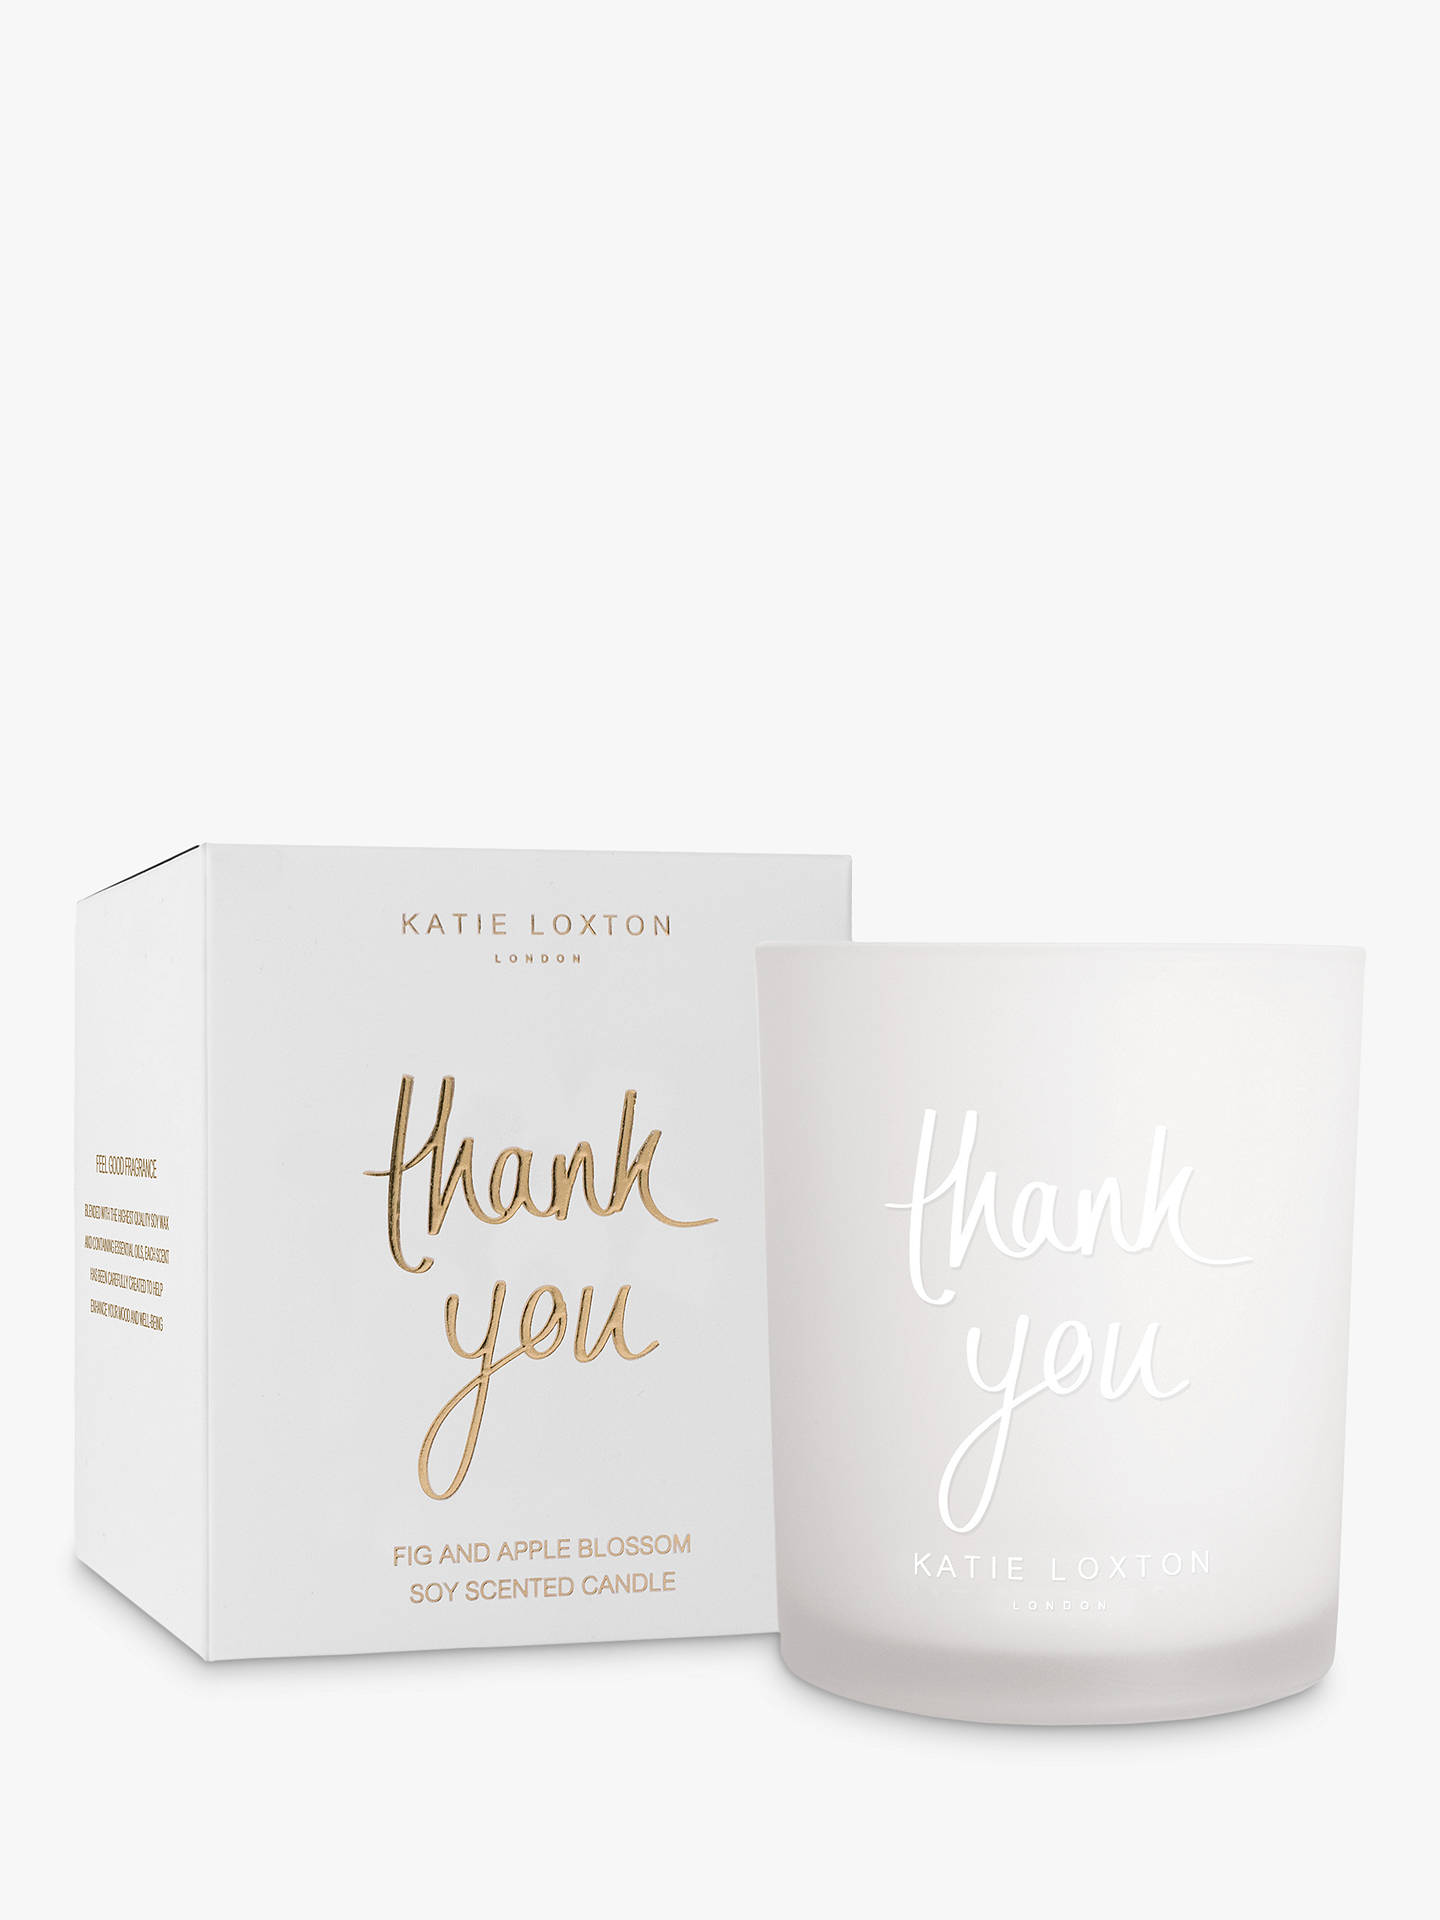 795981e8b5 Buy Katie Loxton Thank You Scented Candle Online at johnlewis.com ...